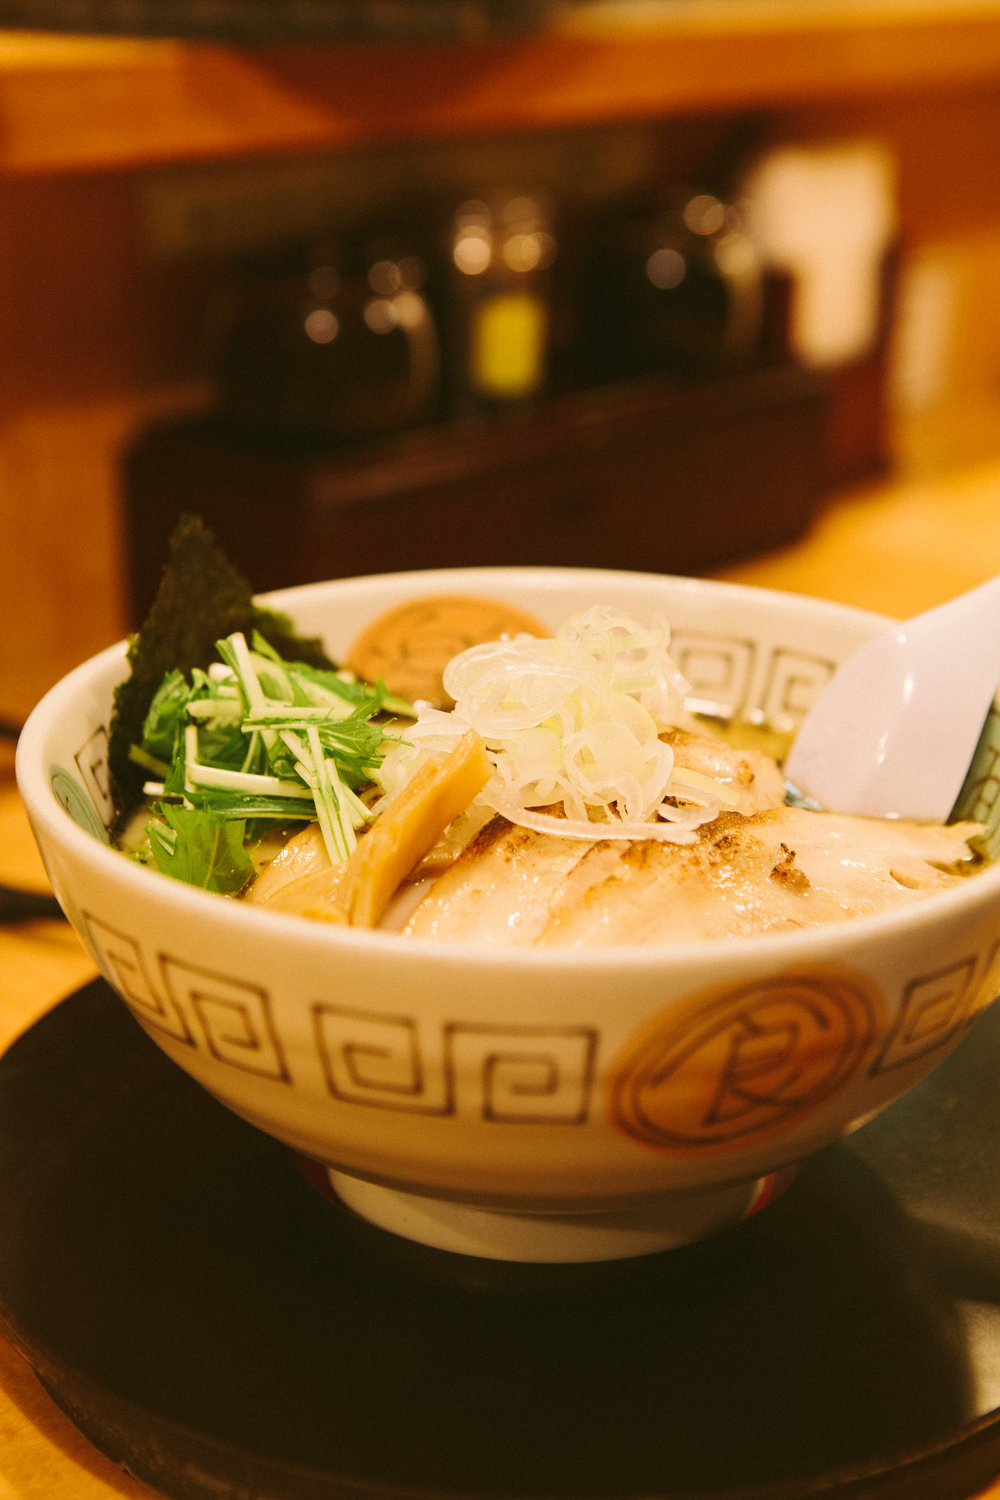 Tomiya - the first meal we had in Japan ever - turned out to be one of the best ramen we've ever had! Japan, 〒160-0023 Tōkyō-to, Shinjuku-ku, Nishishinjuku, 1 Chome−19−2